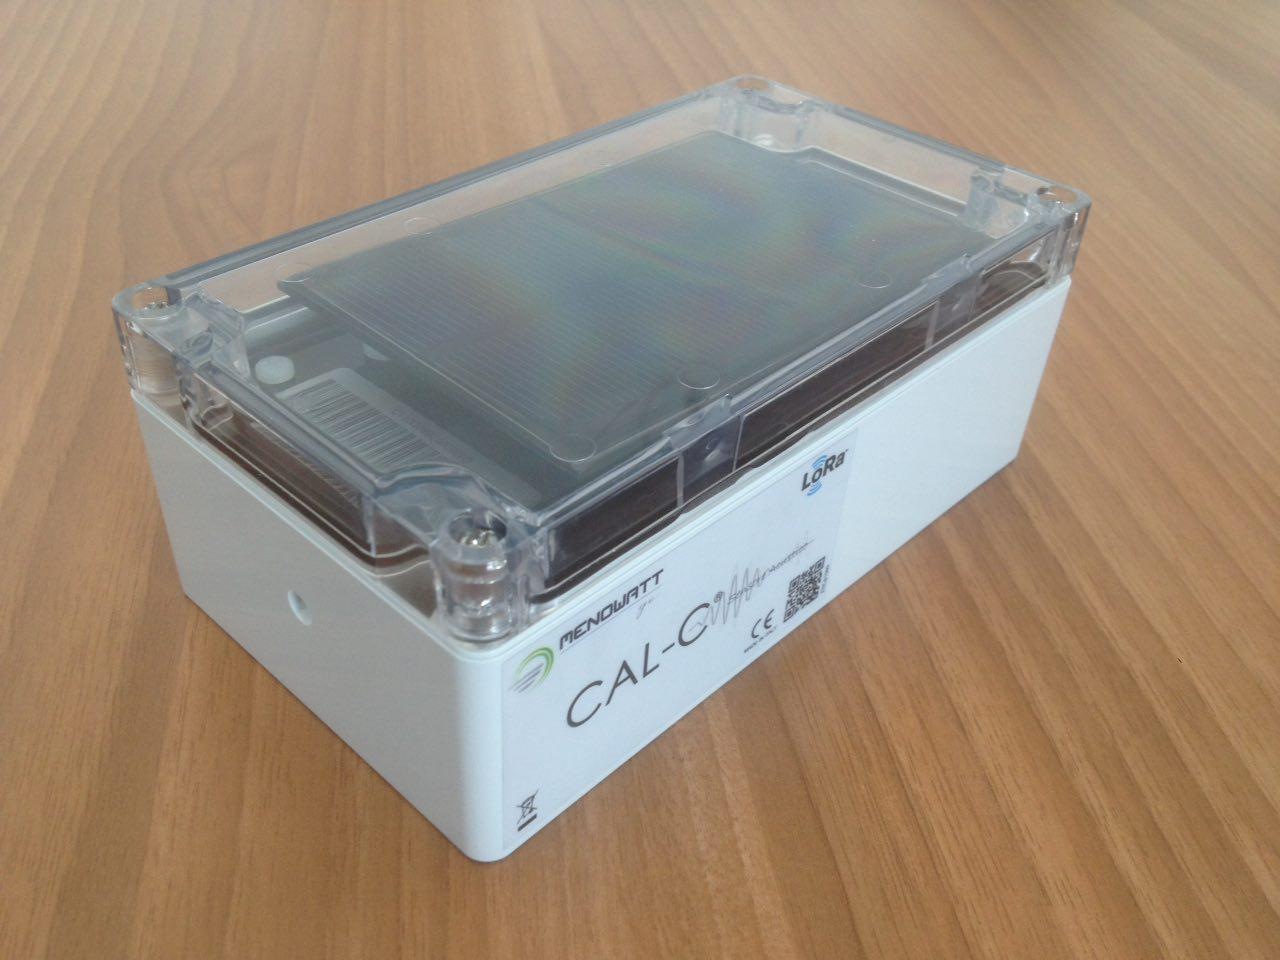 Noise pollution sensor CAx-C made by MenoWatt-GE and powered by MR WATT solar module